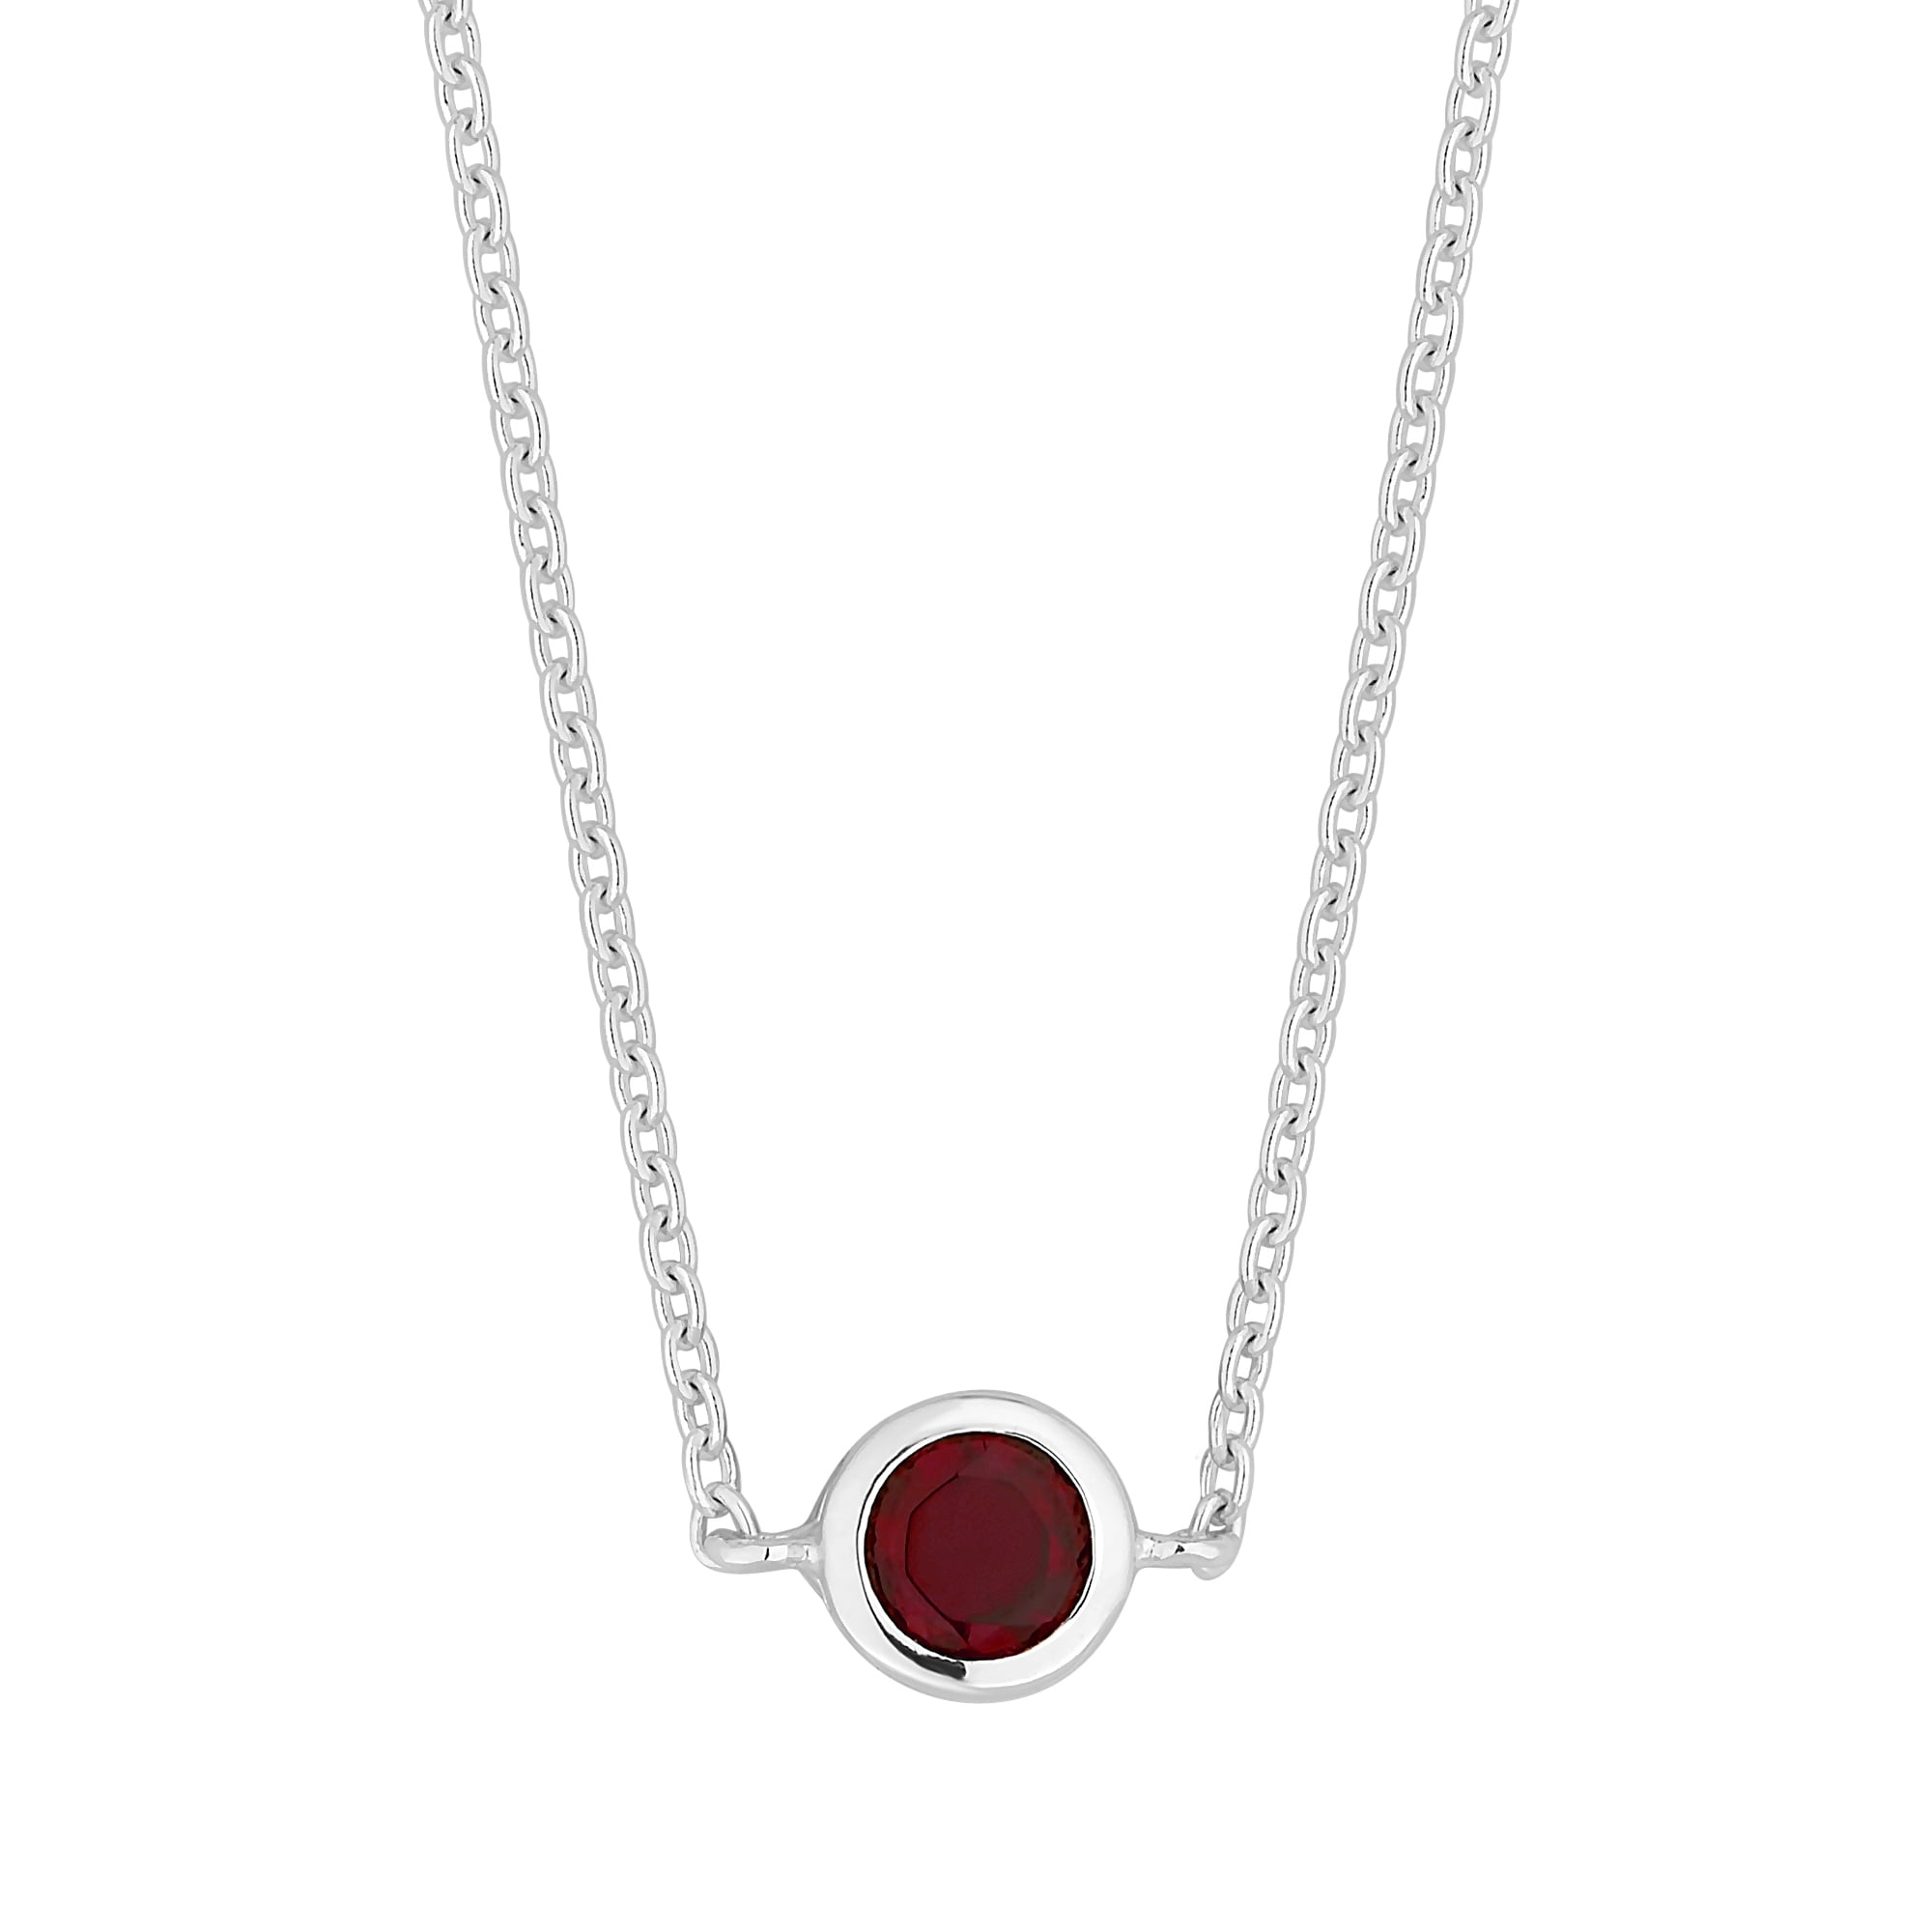 amp and pendant london infinite en of gb gold hires rose necklace love links garnet rhodolite